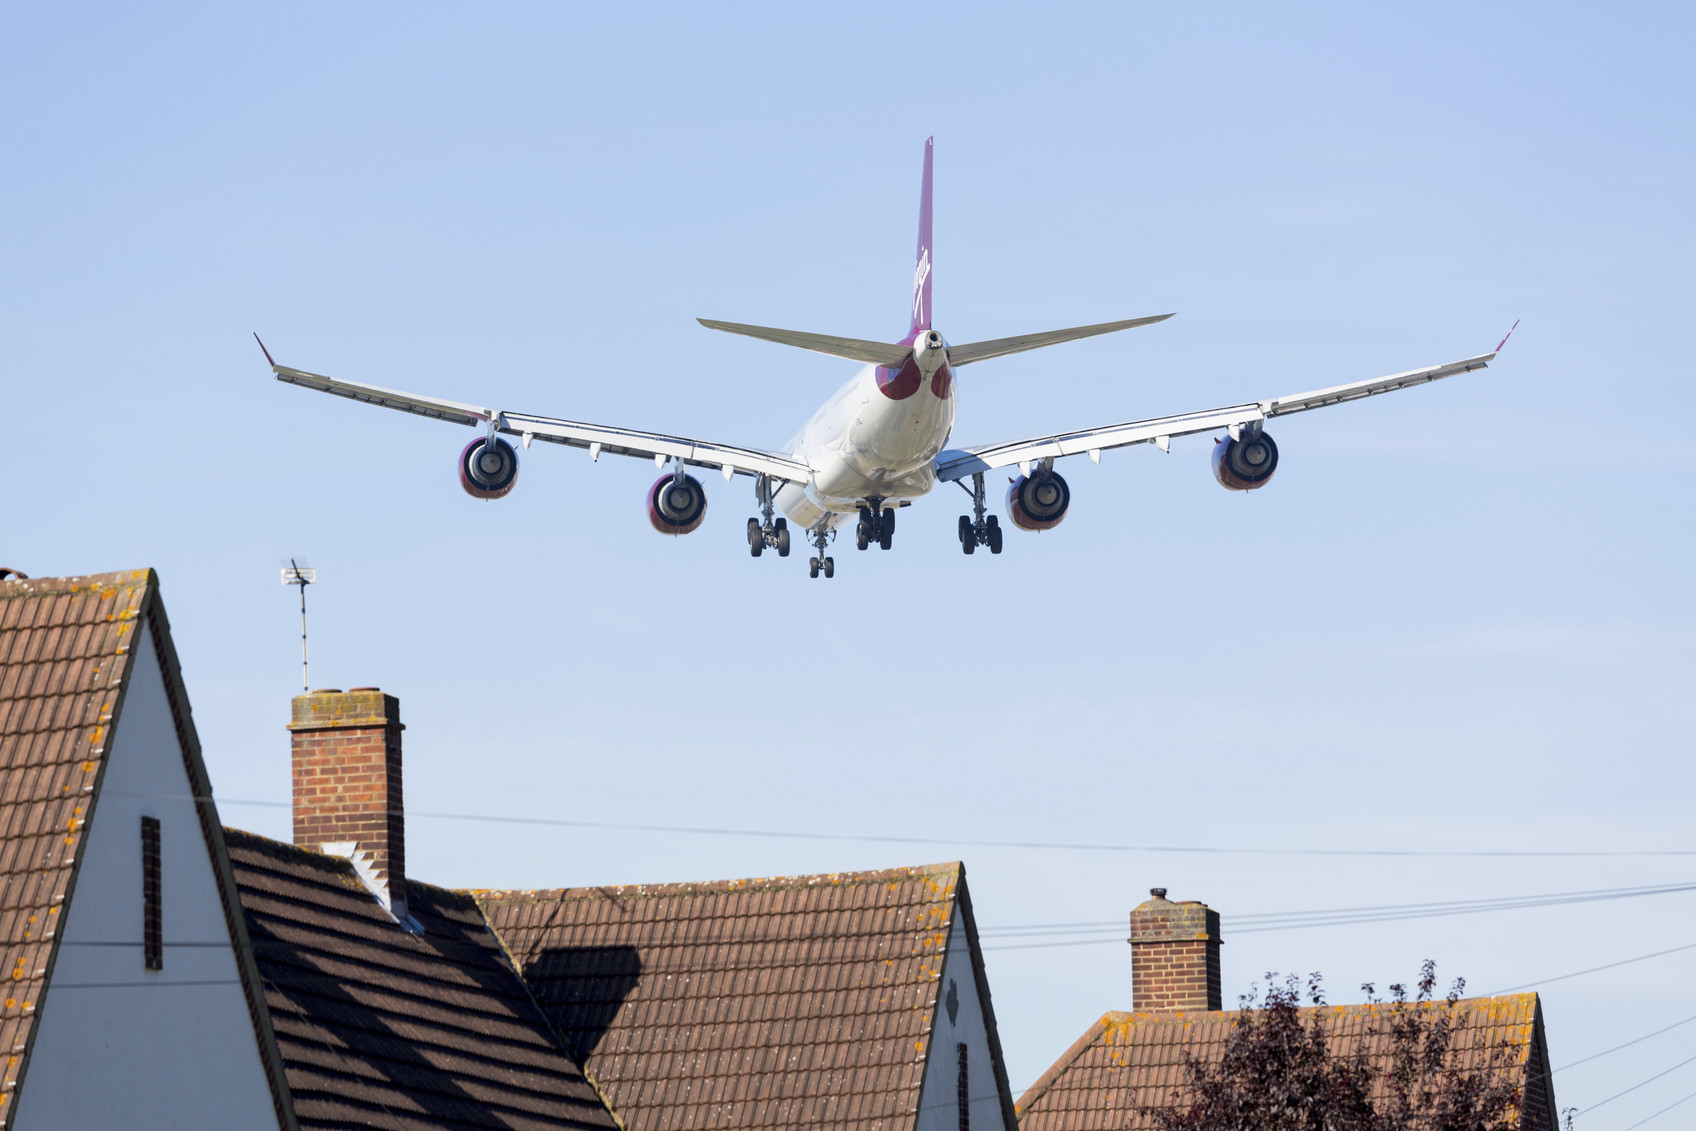 Heathrow Airport, London, England - September 9, 2012: Virgin Atlantic Airbus A340 approaches Heathrow Airport flying low over homes near the runway